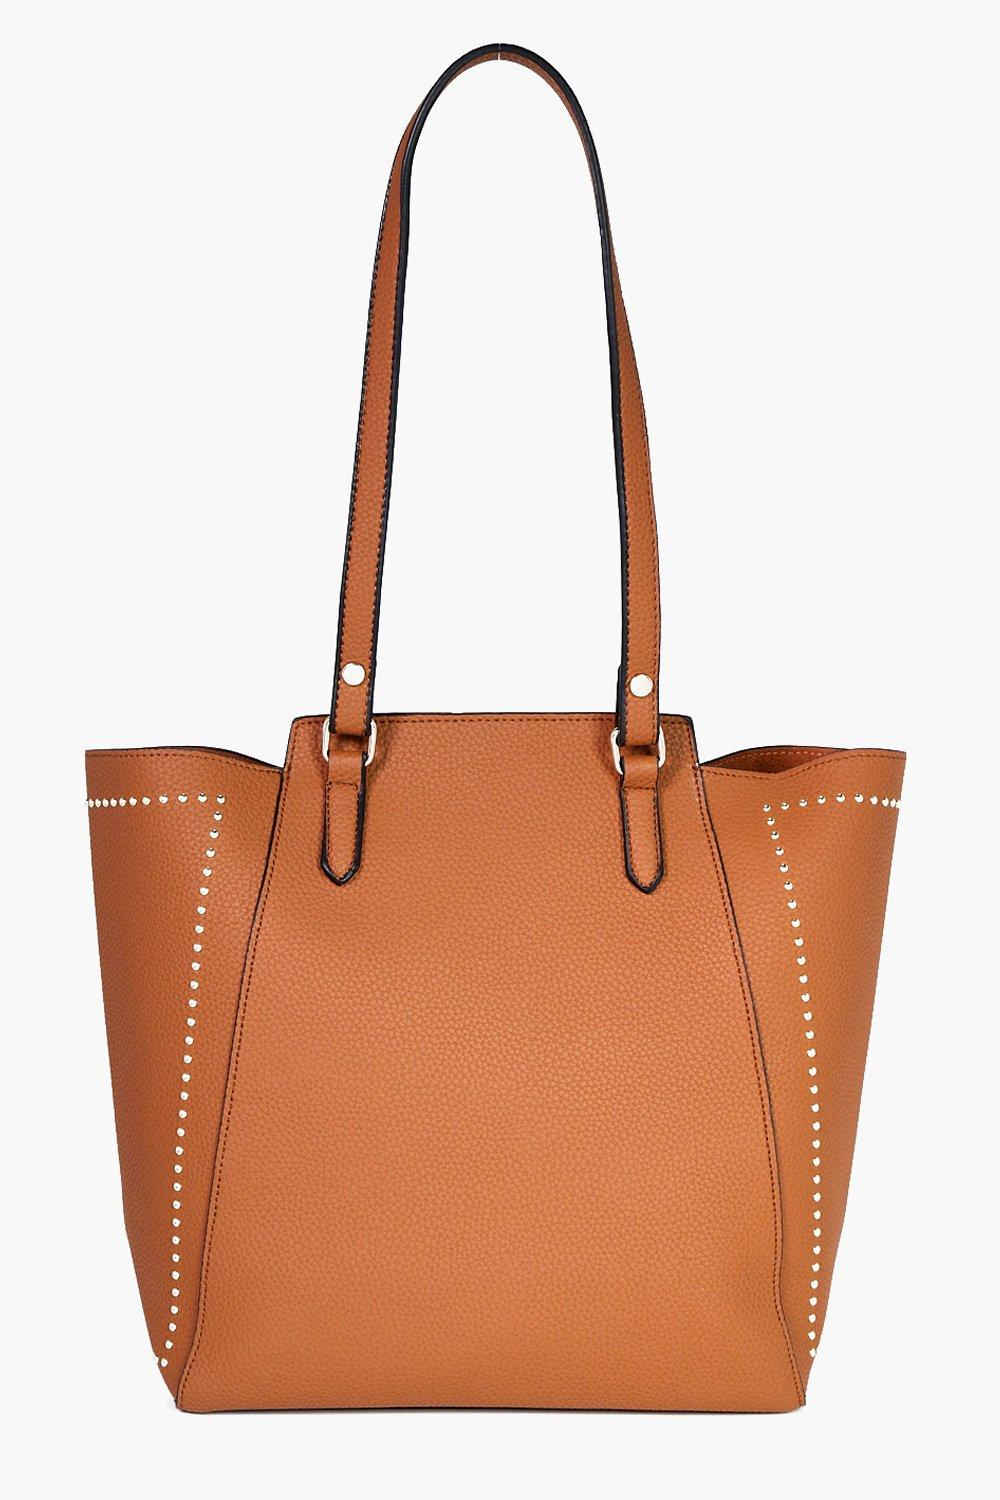 Studded Wing Tote - tan - Neve Studded Wing Tote -